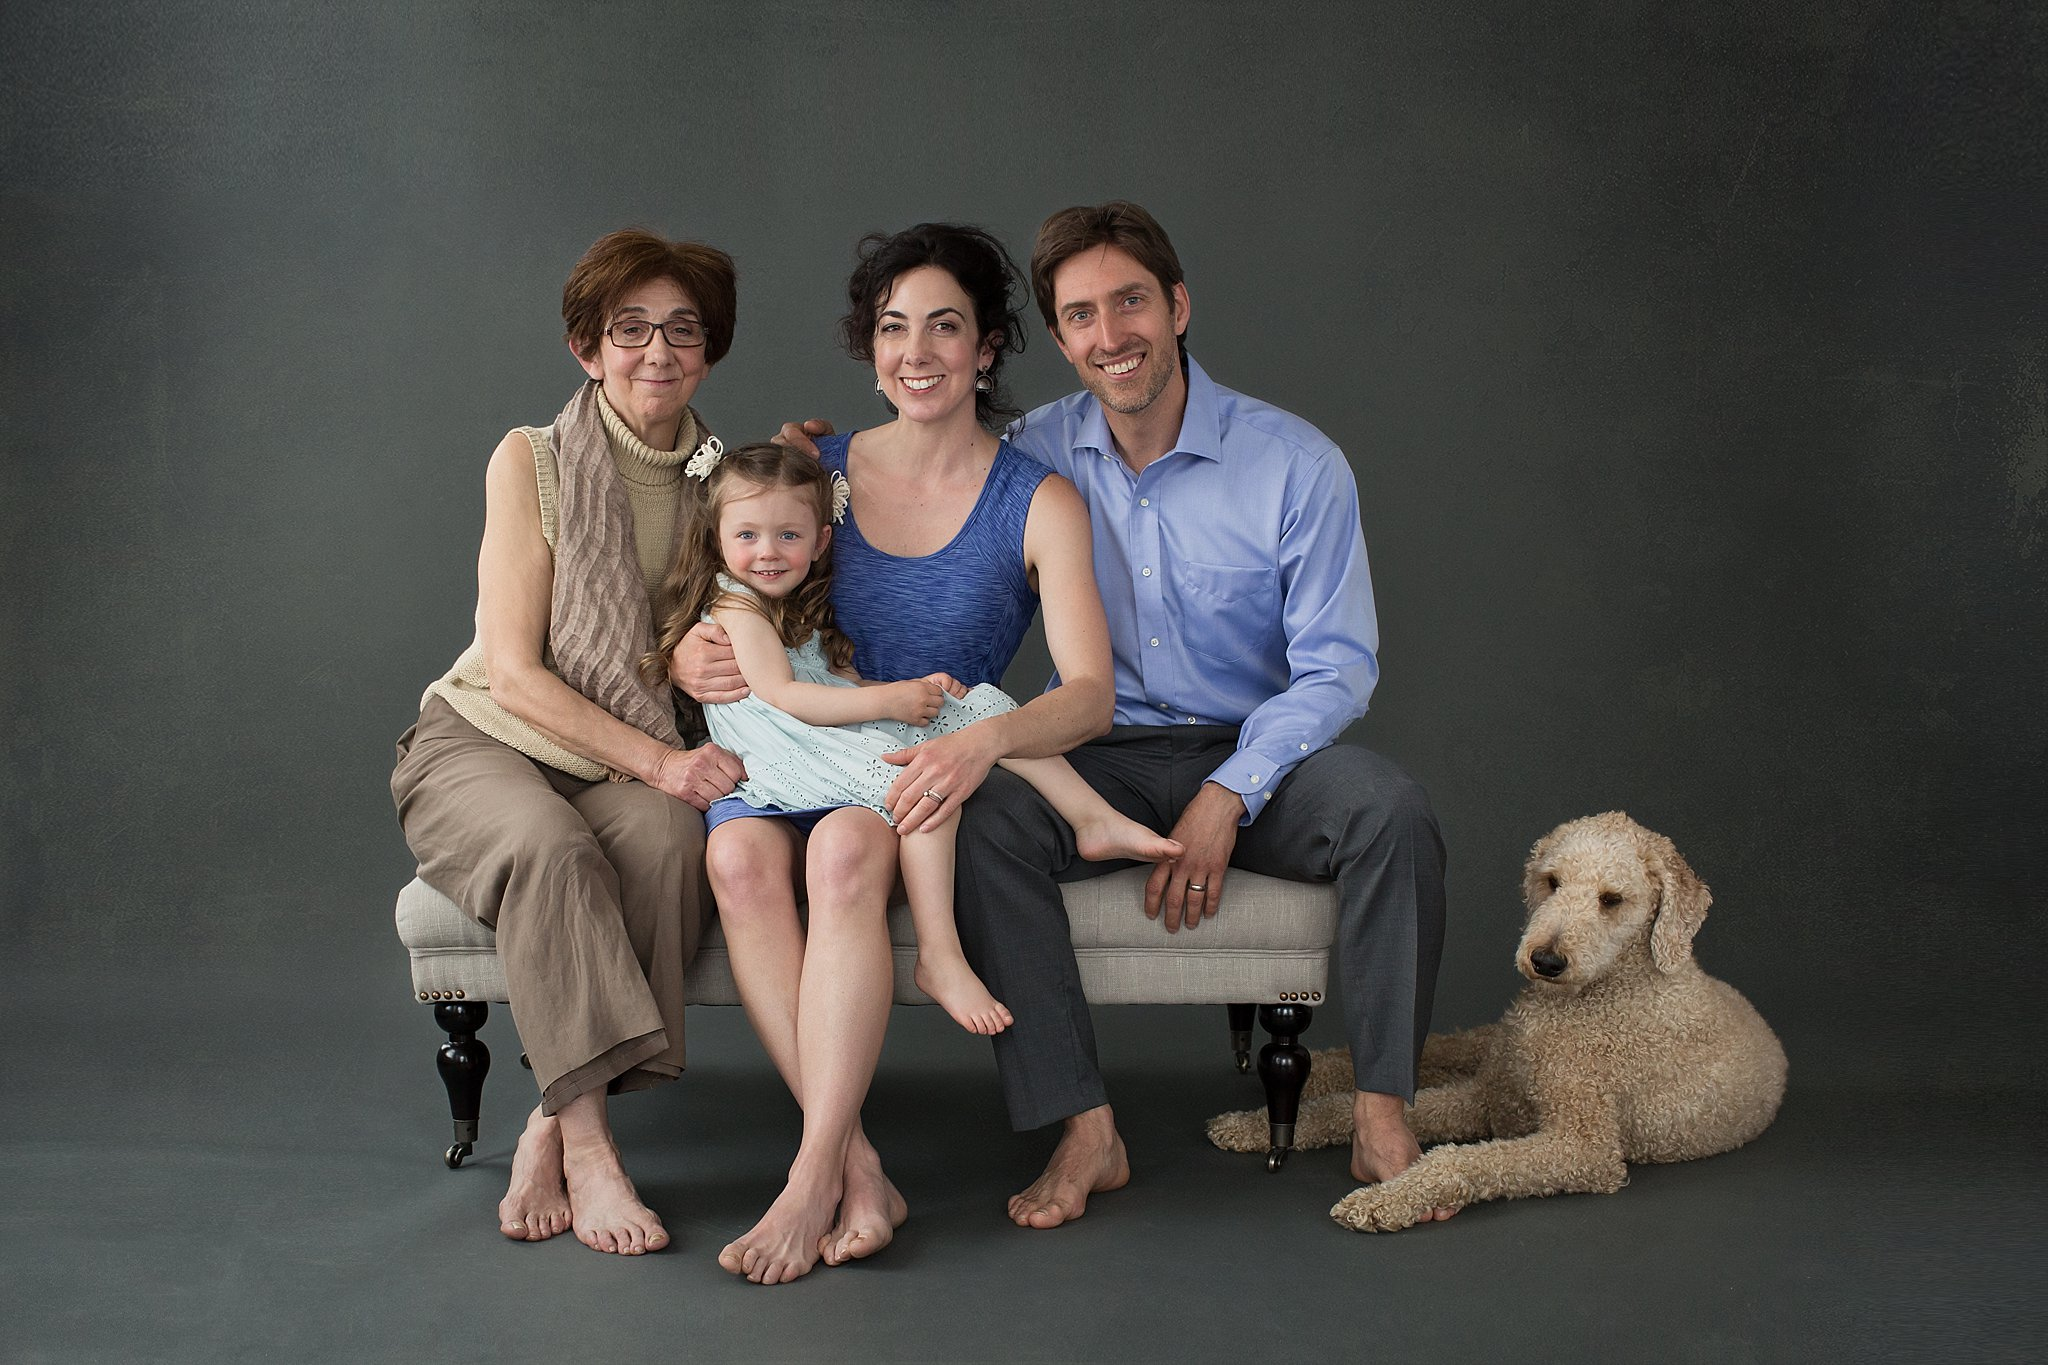 Casual Family Portrait with Dog_0007.jpg